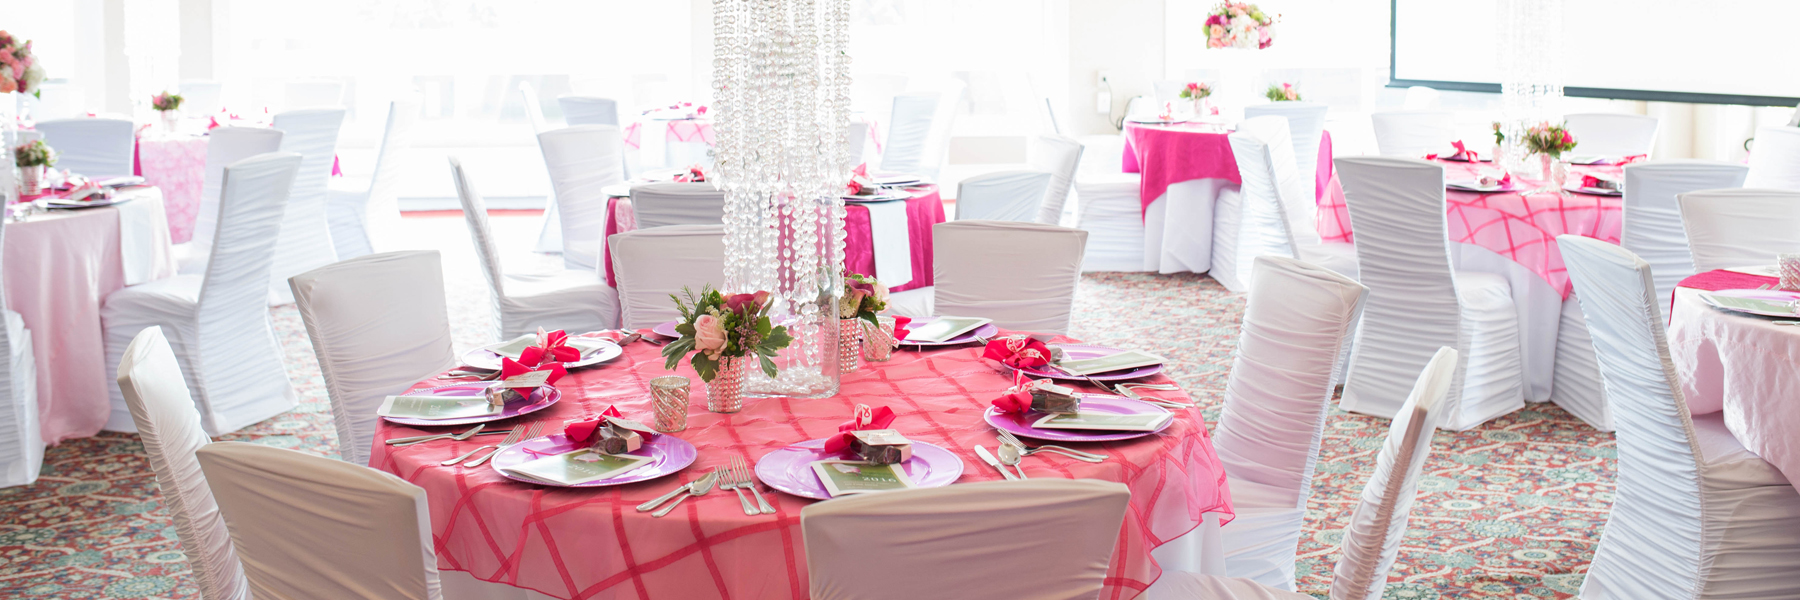 Rental Catalog - Best Events Catering